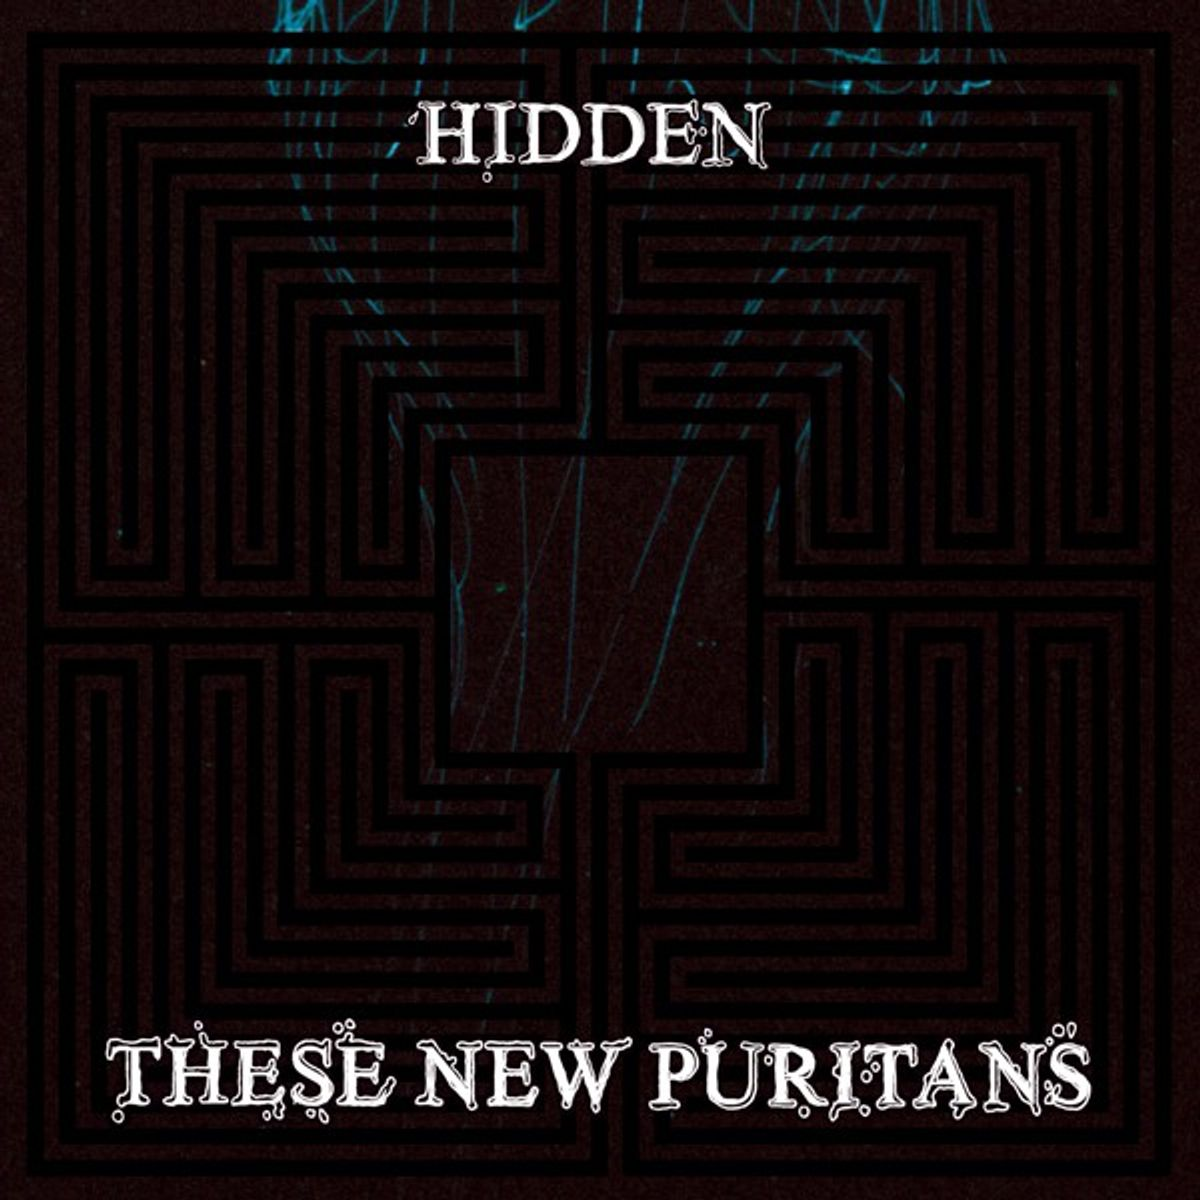 #Koortjes - These New Puritans - Attack Music (2010)